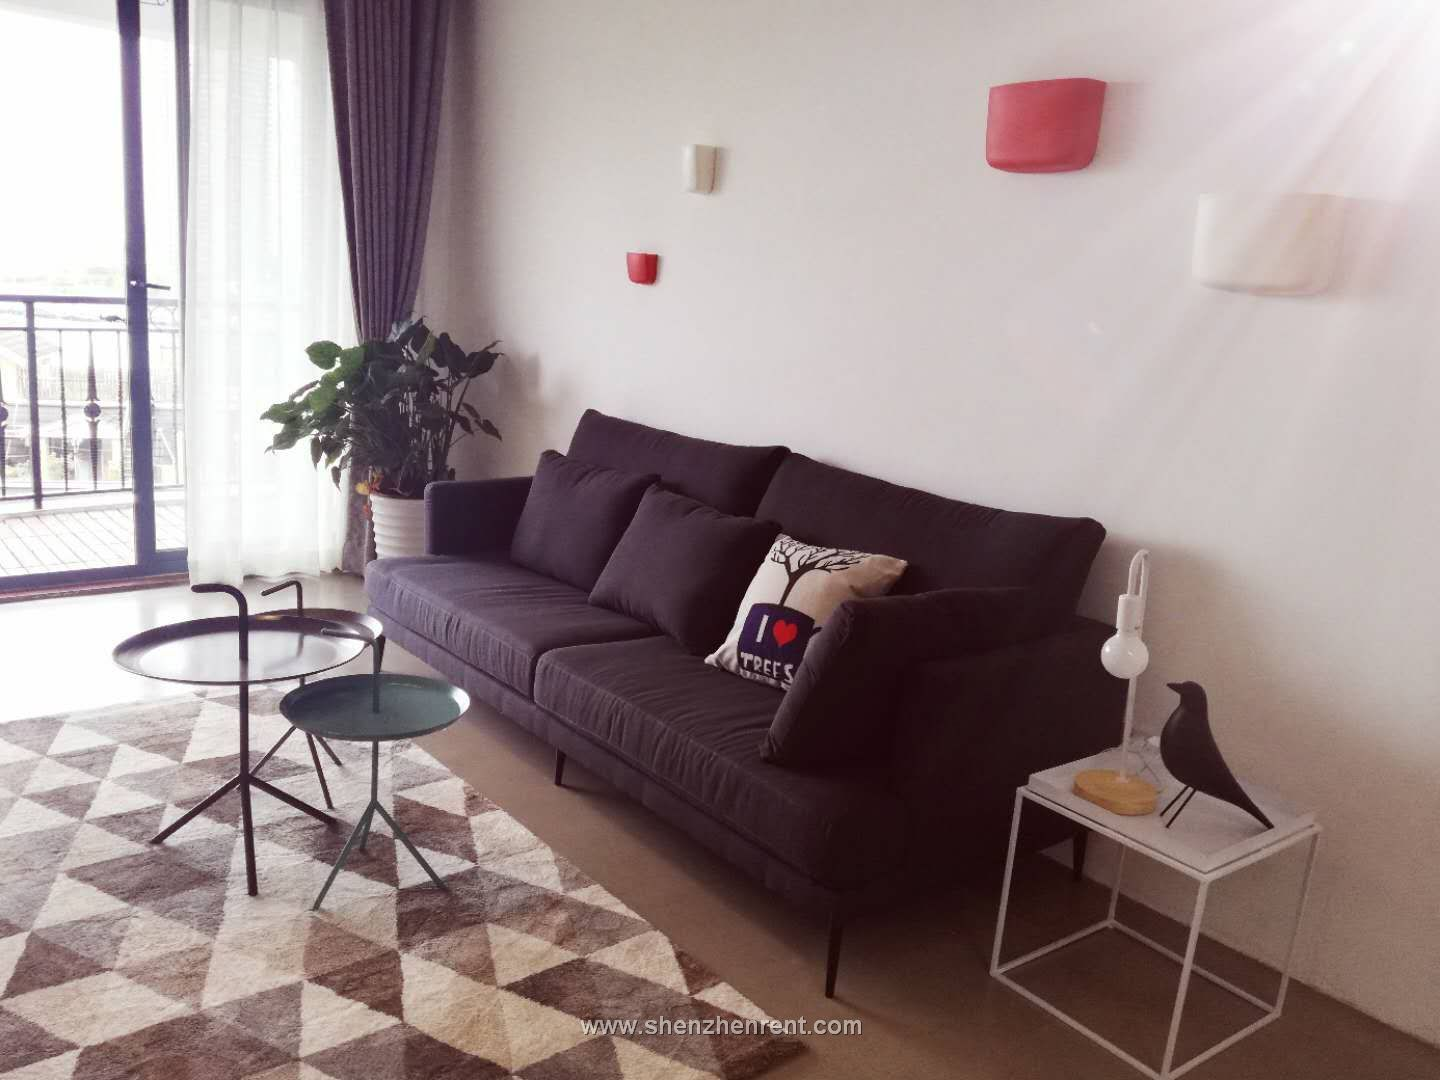 Newly renovated 2 bedrooms apartment in shekou for rent